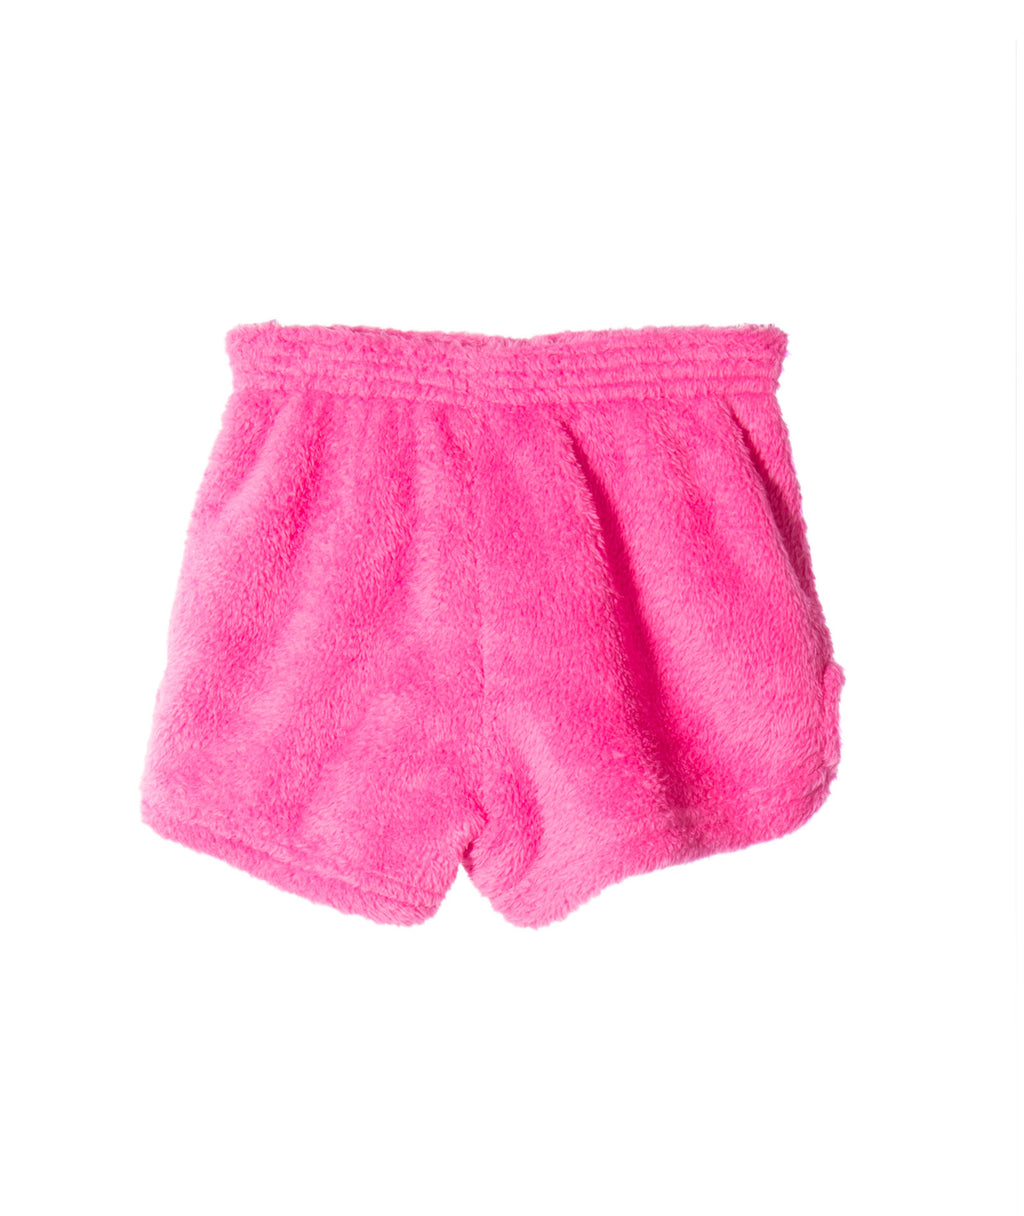 Made with Love and Kisses Girls Pink Blue Heart Shorts